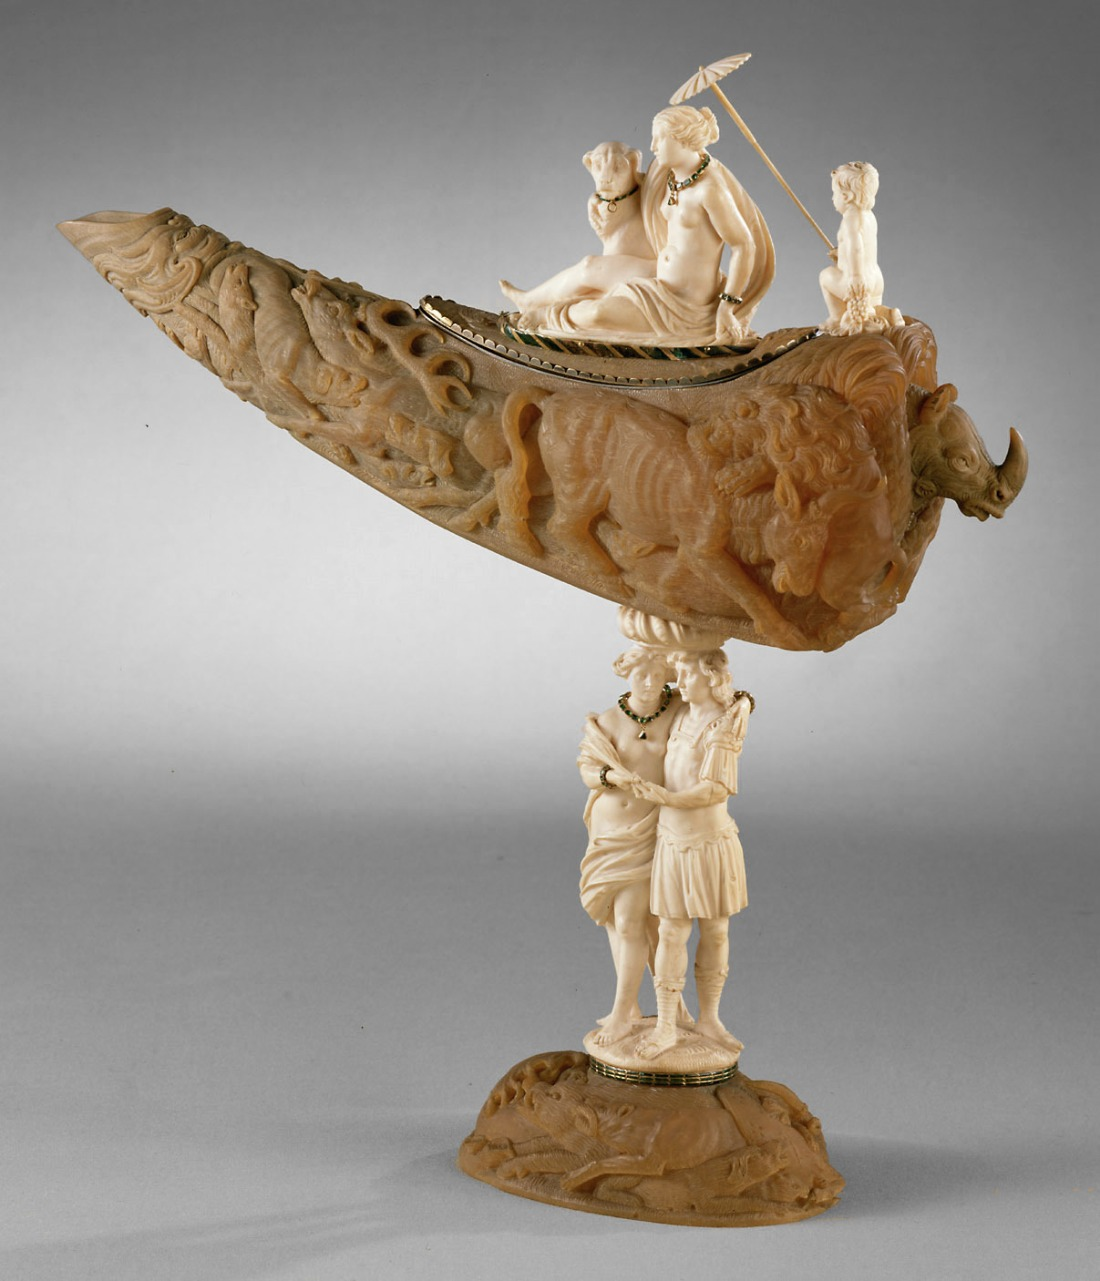 Ceremonial vessel. 1750-1775.